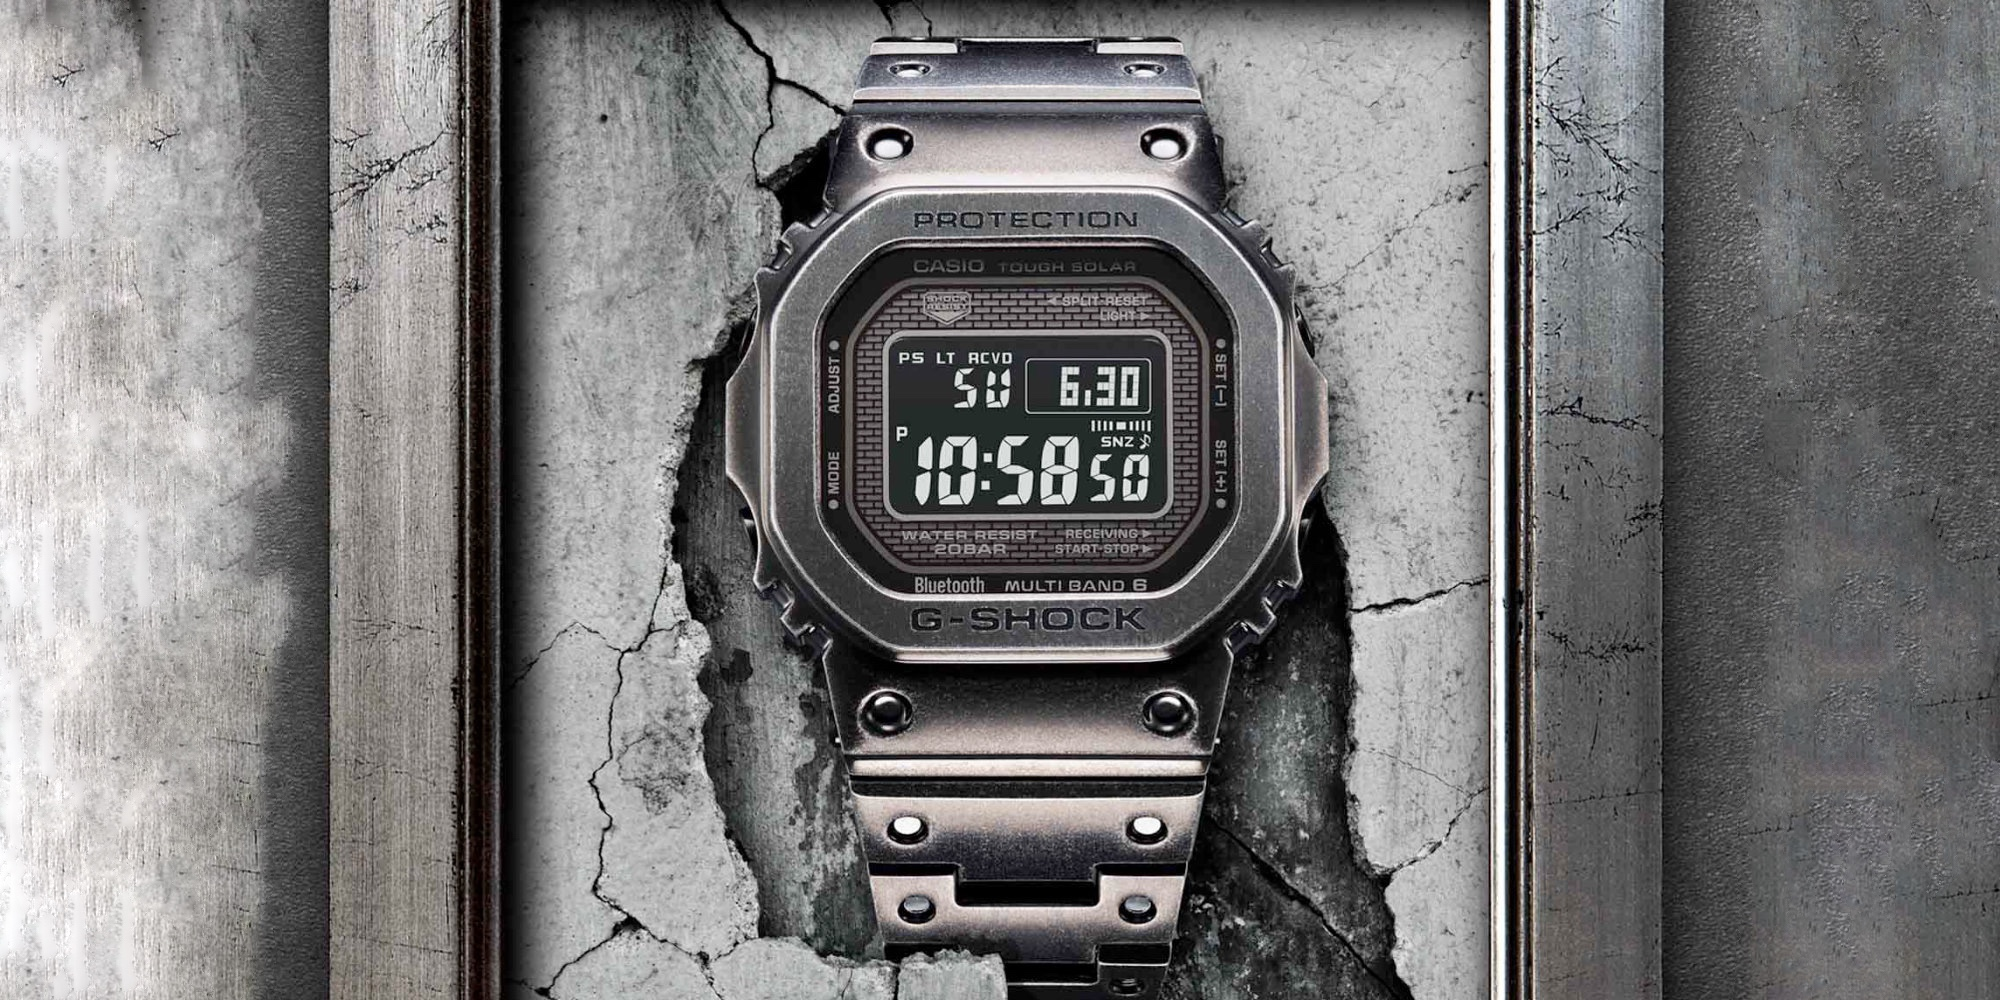 Casio's New G-SHOCK Full Metal Watch Offers A Patinated